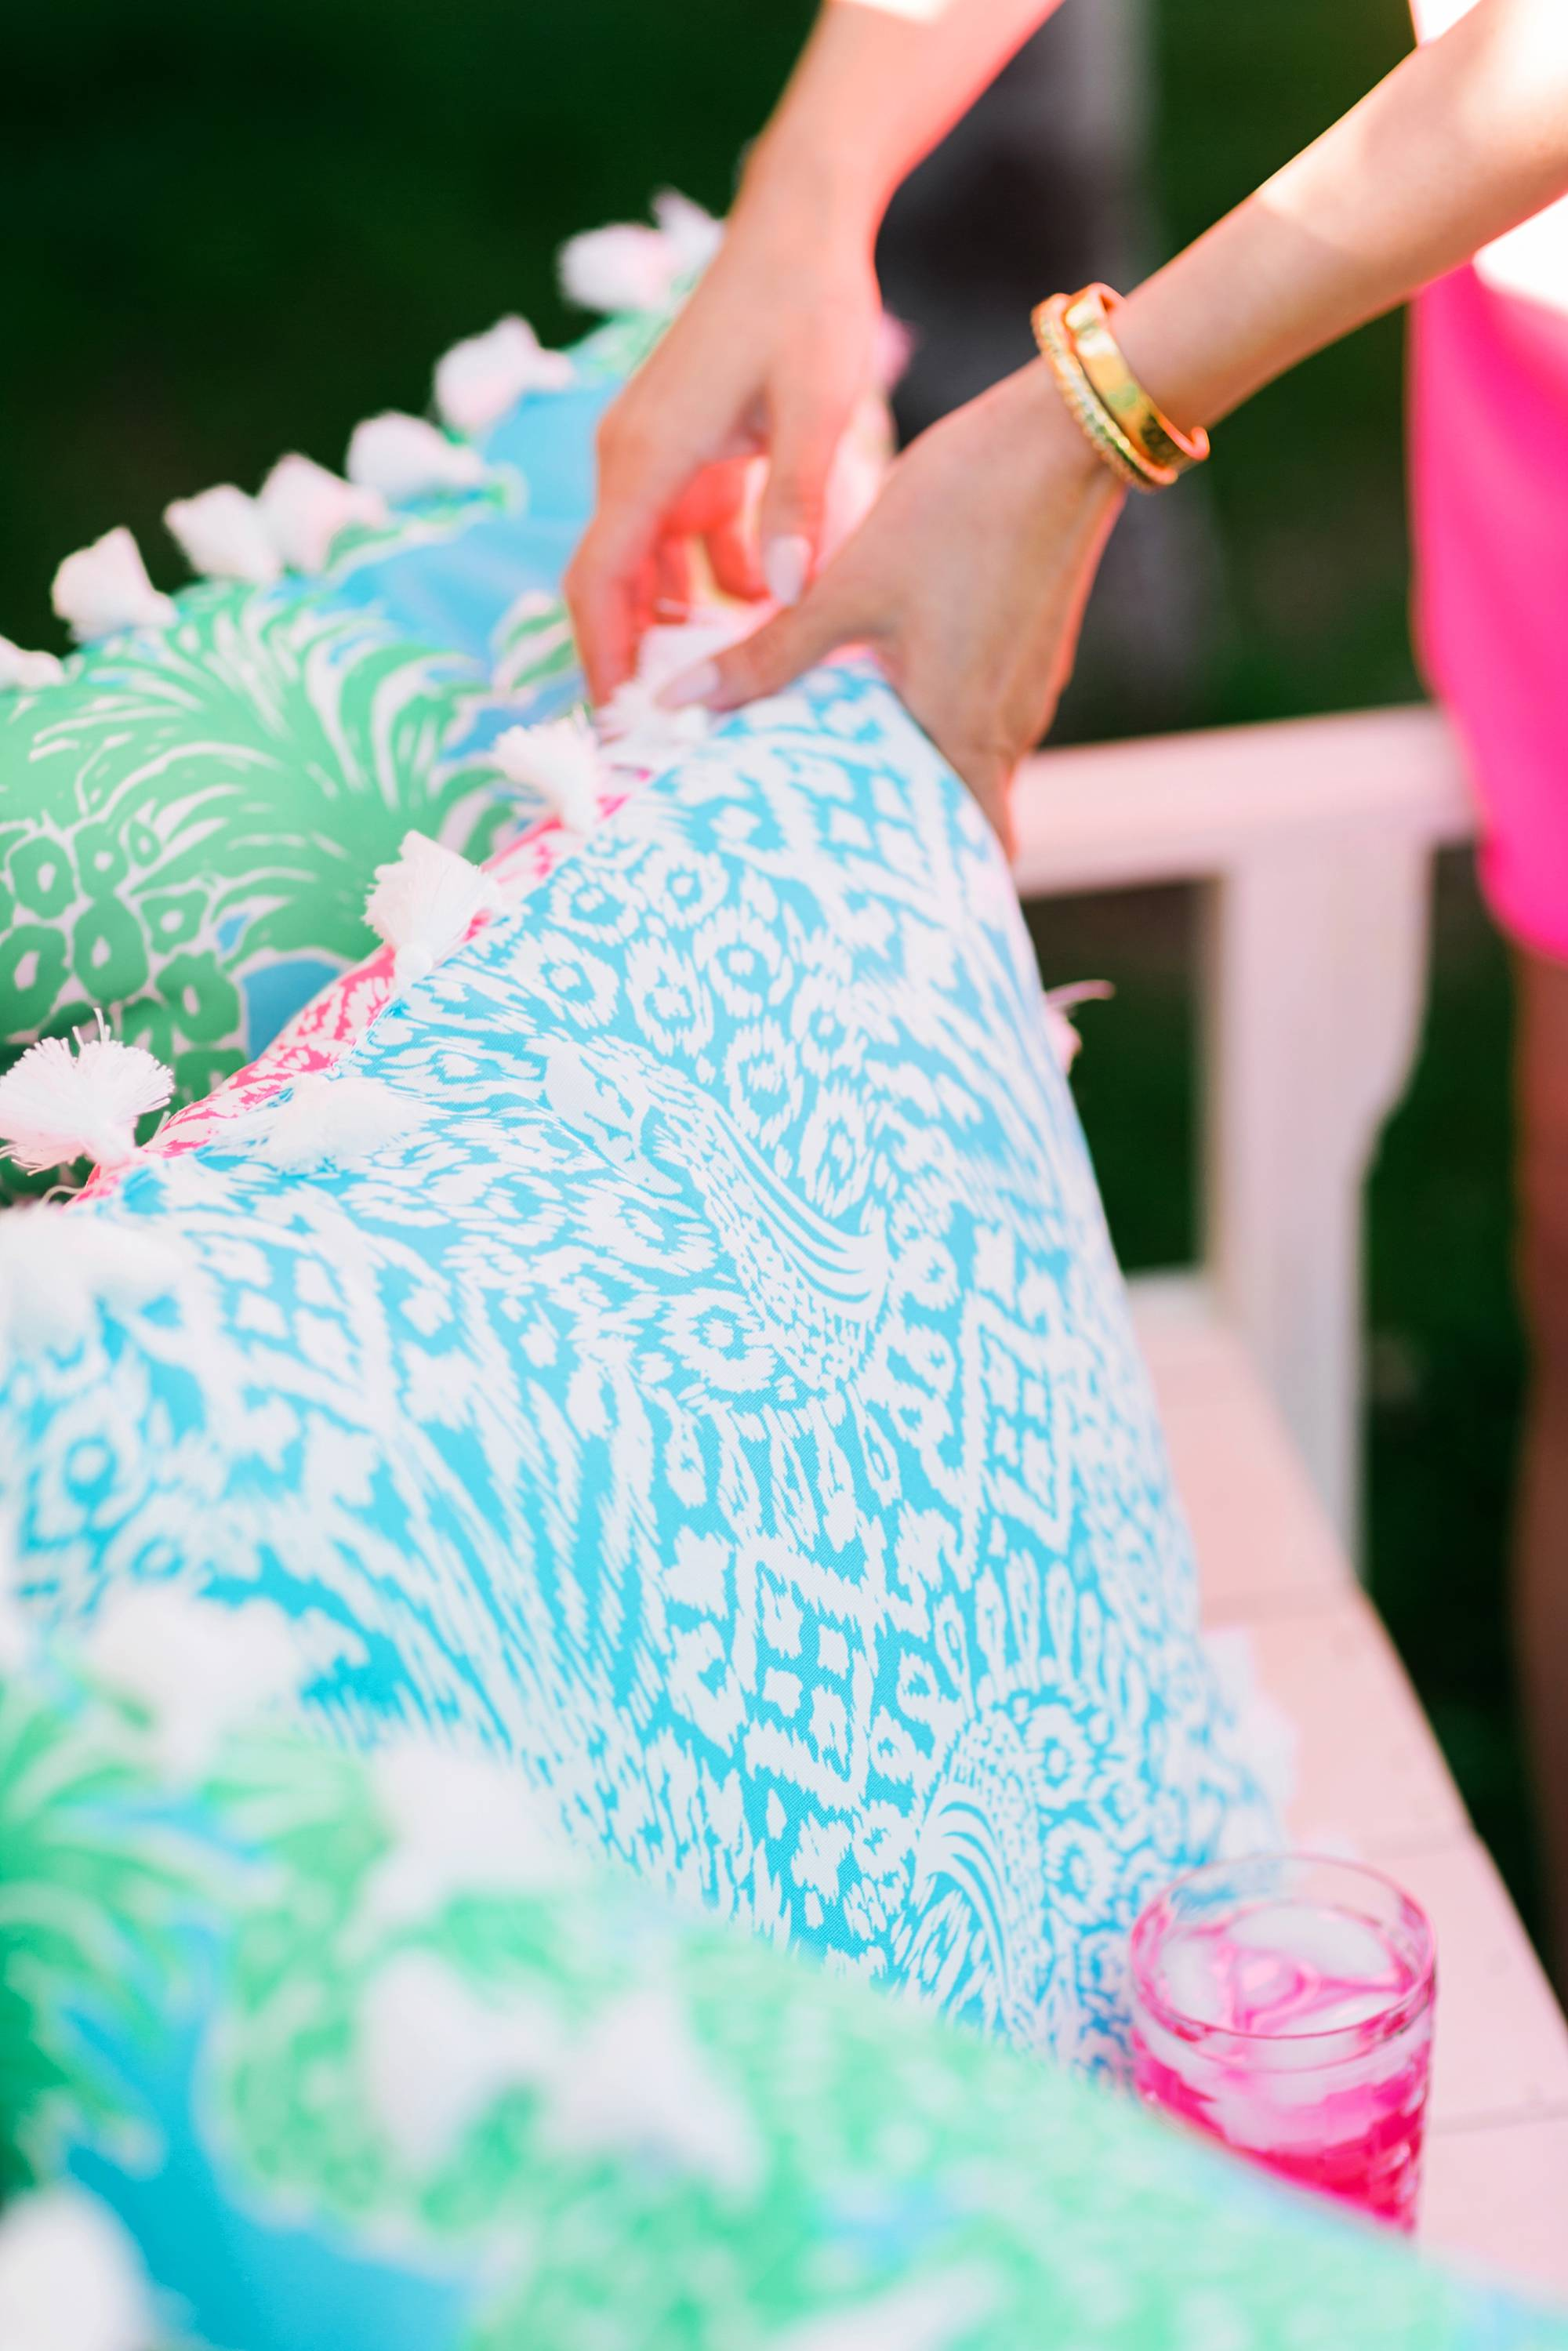 Lilly Pulitzer x Pottery Barn collaboration Spring summer 2019 on white bench with lilly Pulitzer outdoor pillows